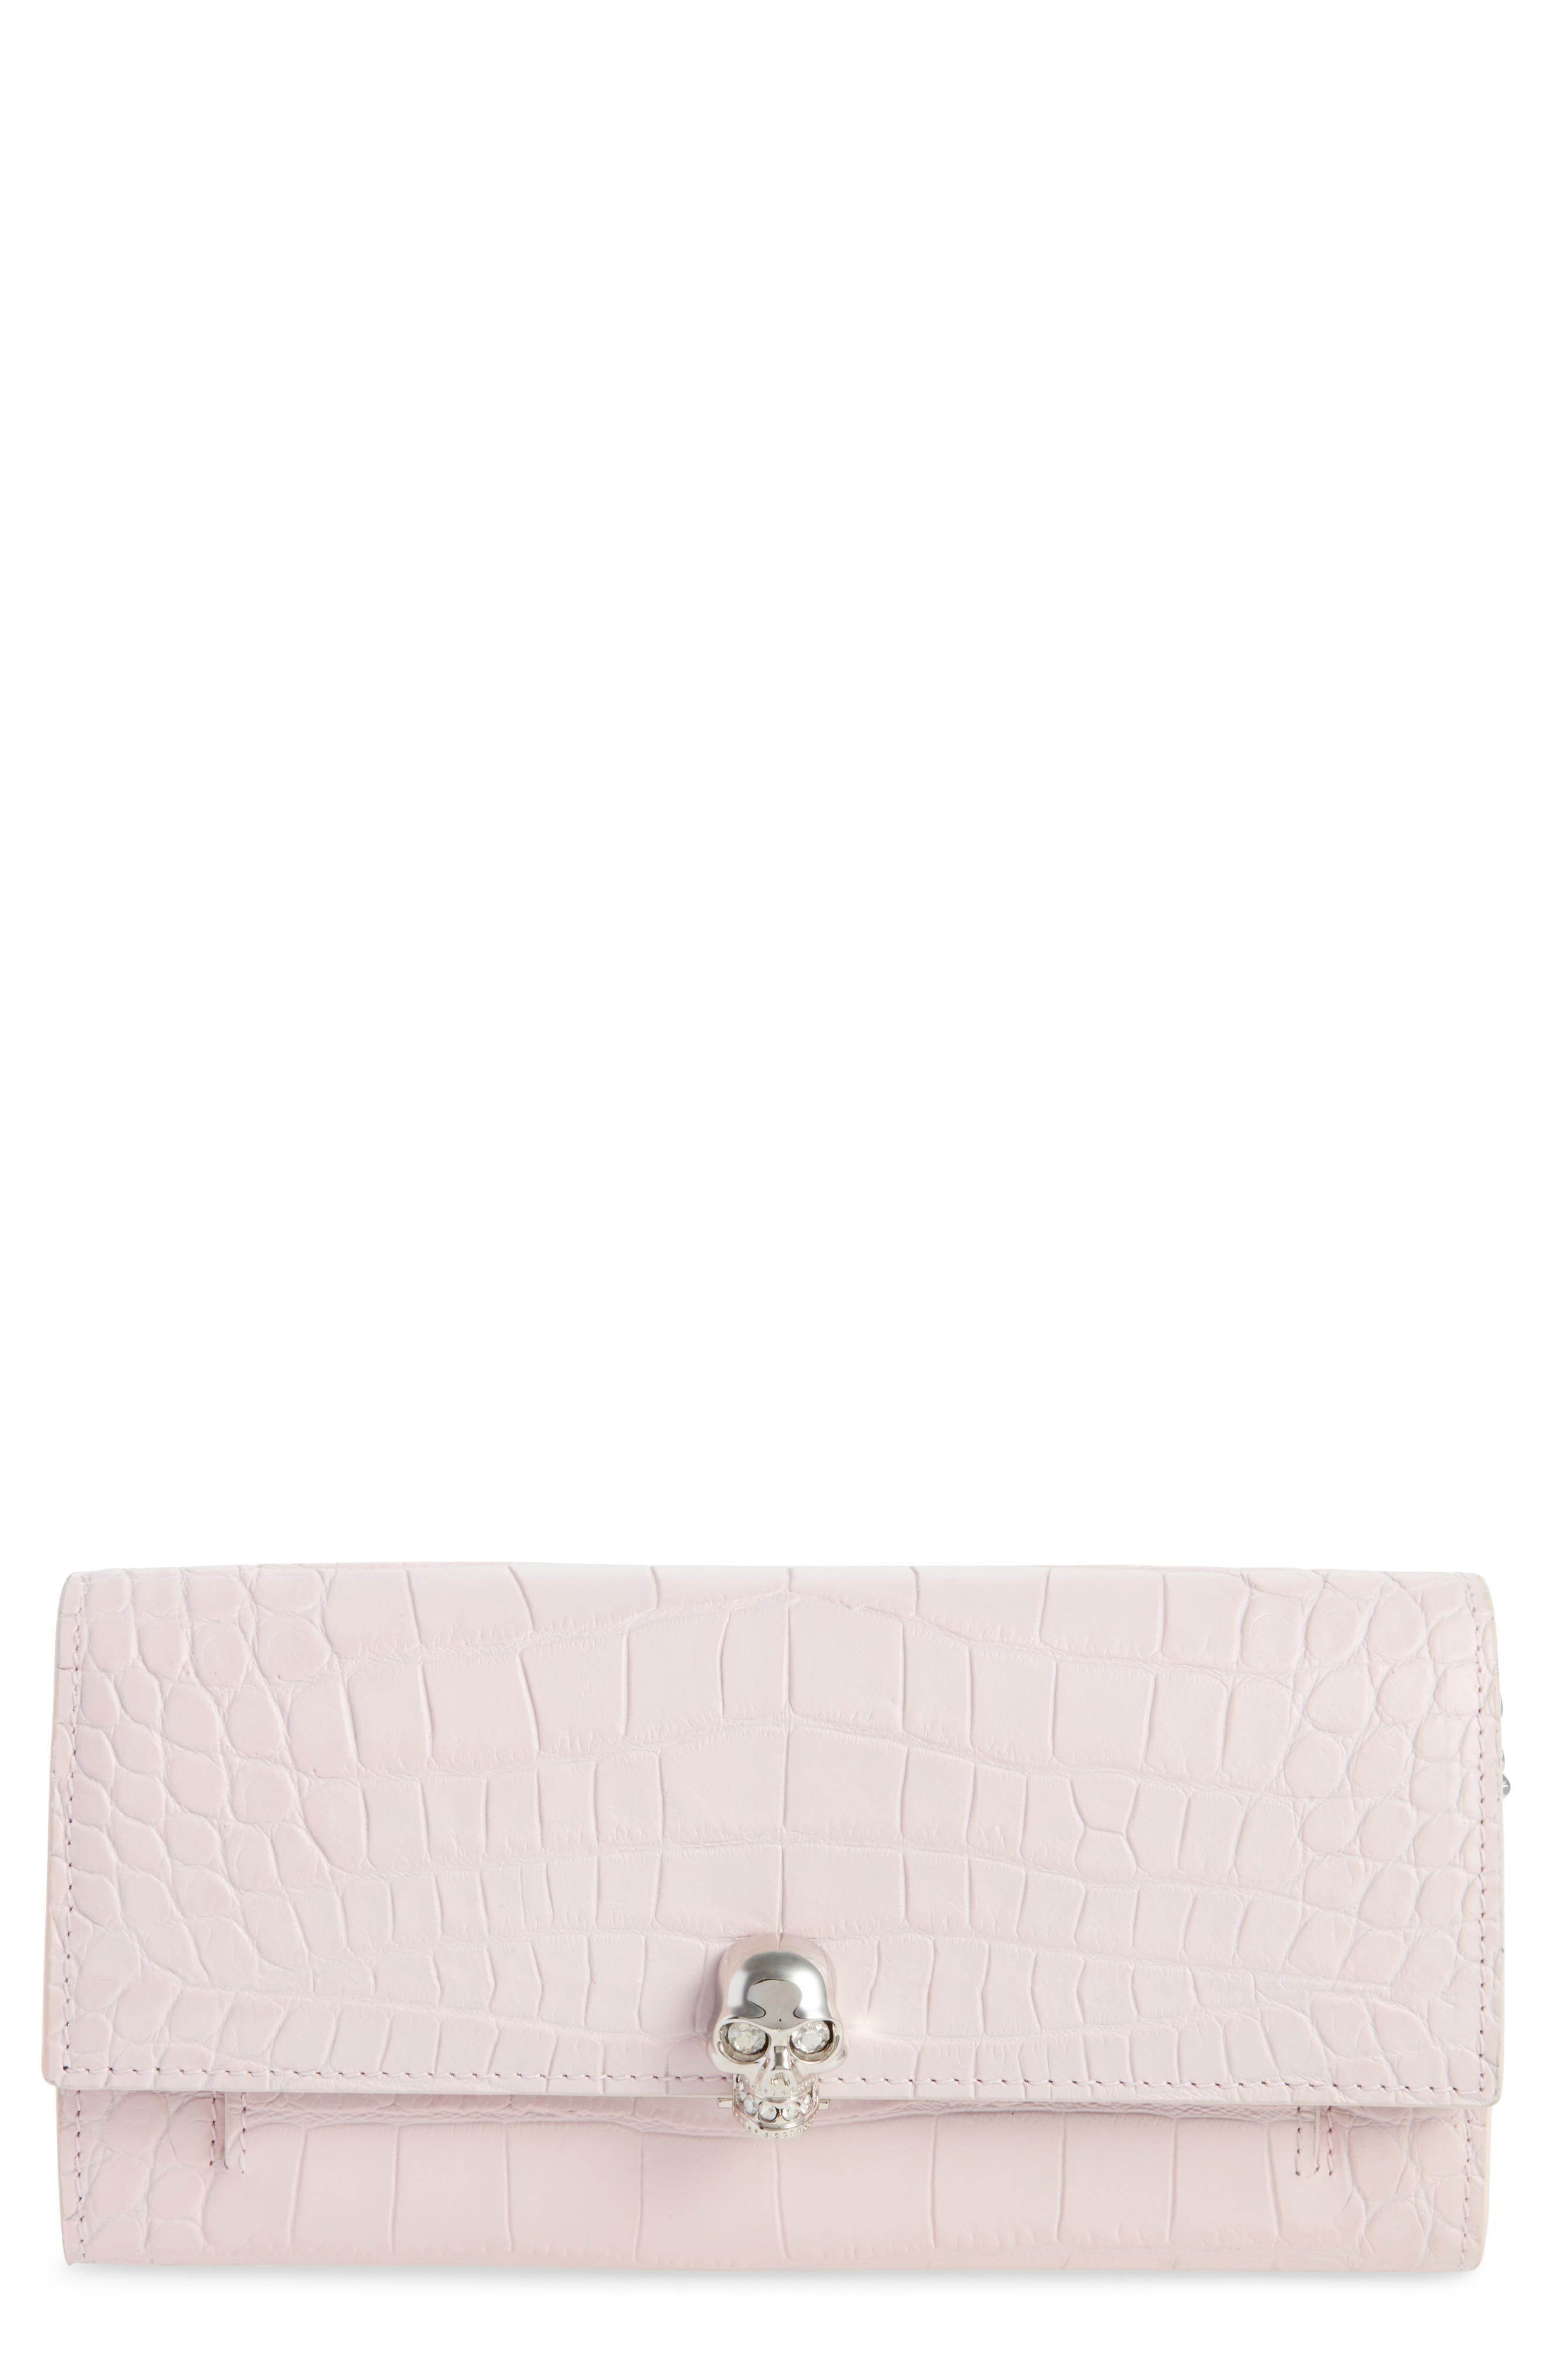 Alternate Image 1 Selected - Alexander McQueen Skull Croc Embossed Leather Wallet on a Chain